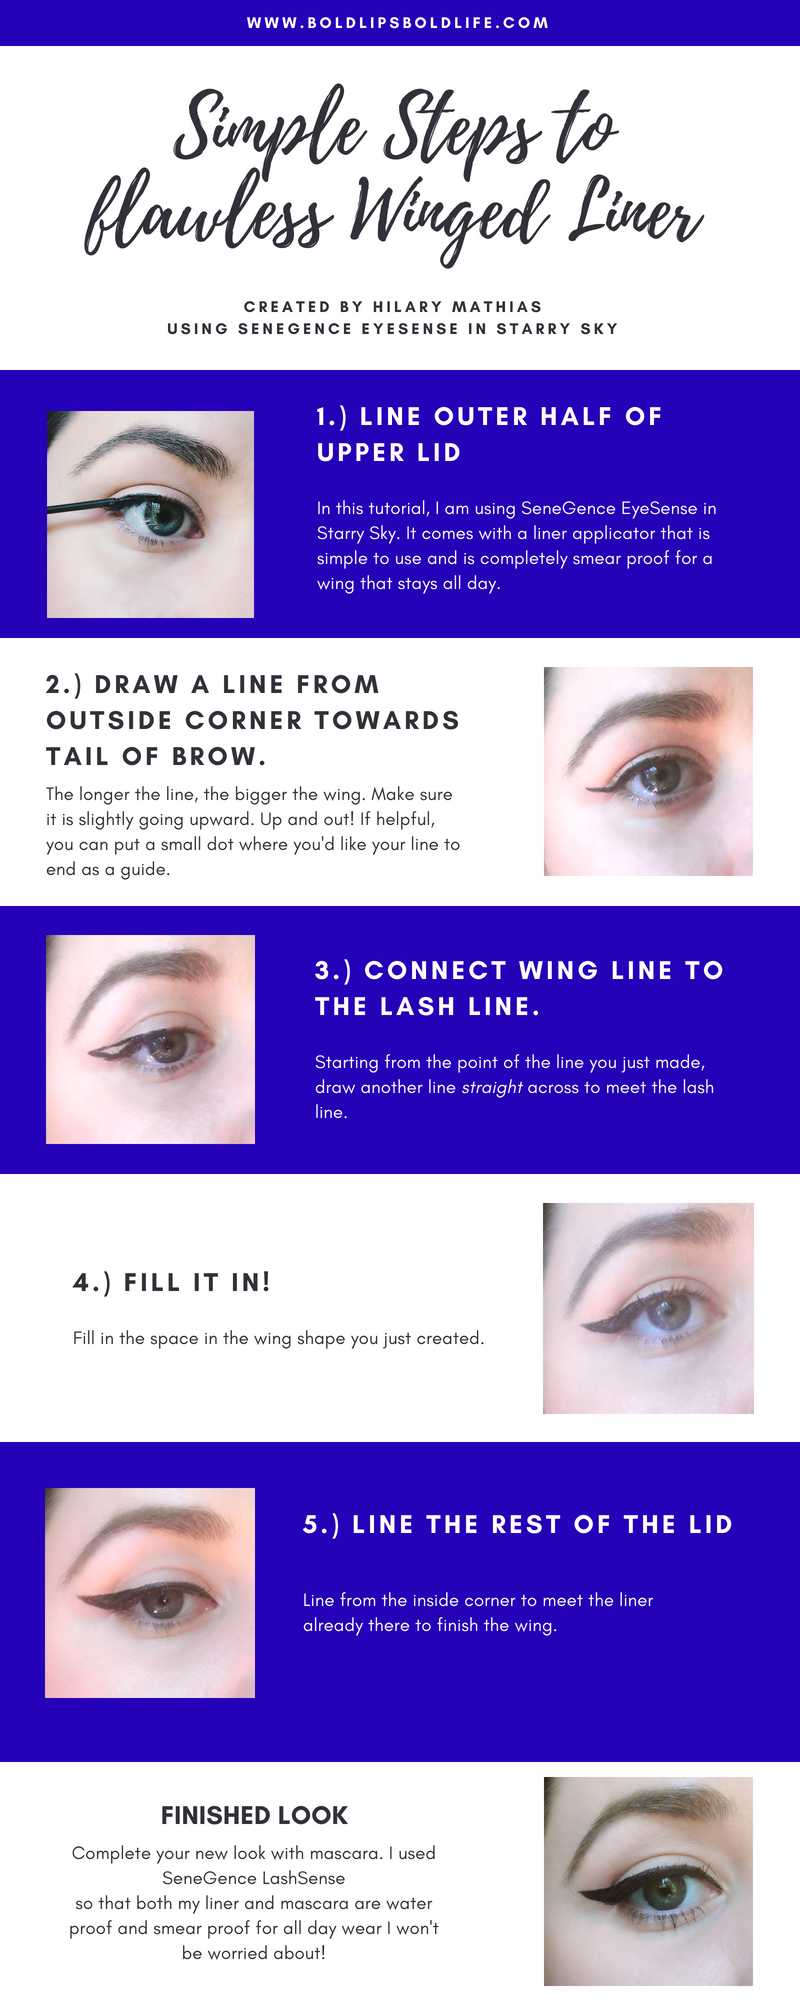 Winged Liner - Winged Eyeliner - How to Winged Liner